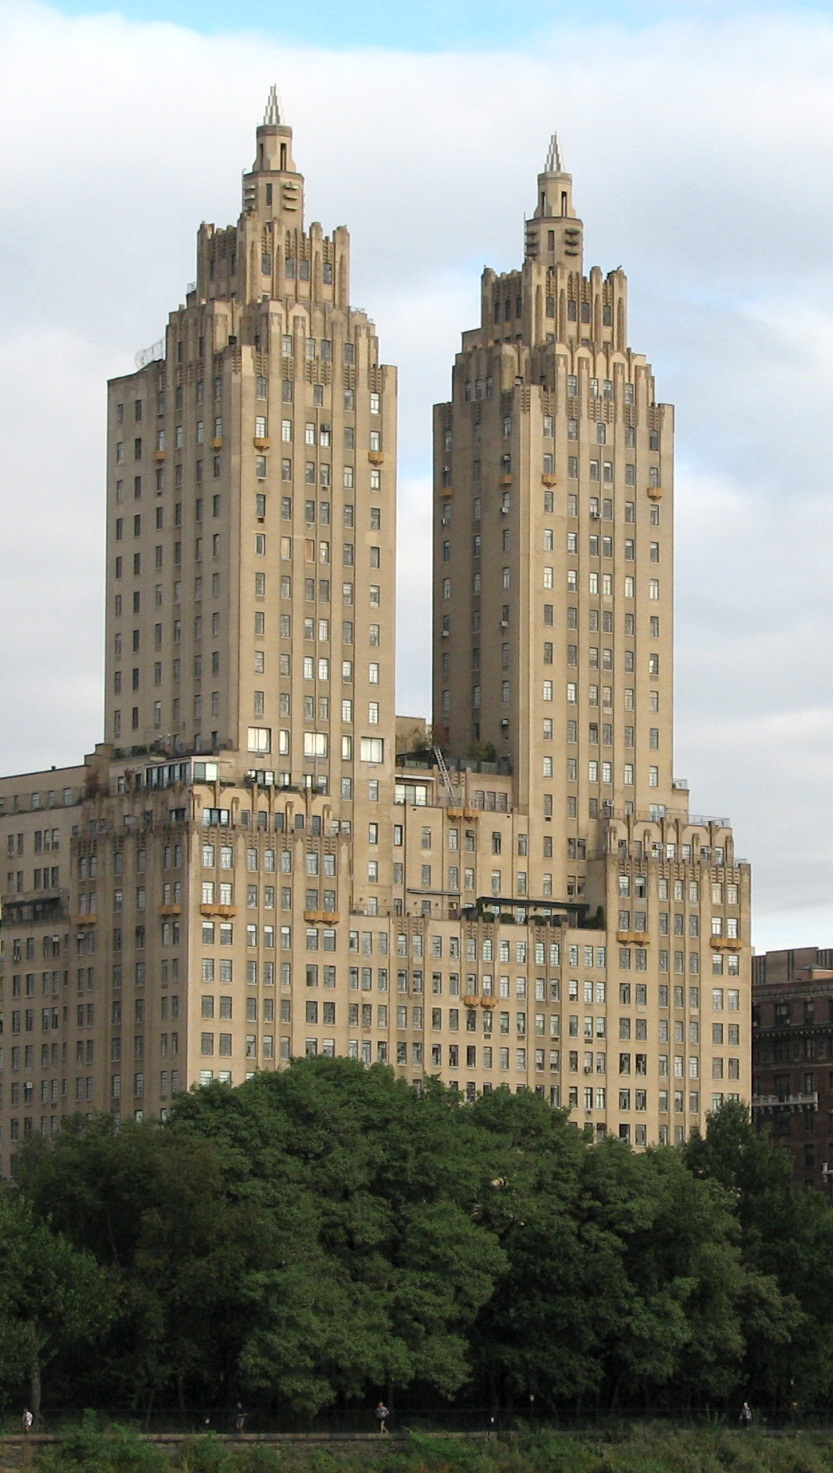 http://upload.wikimedia.org/wikipedia/commons/a/ac/The_Eldorado_Apartments.jpg